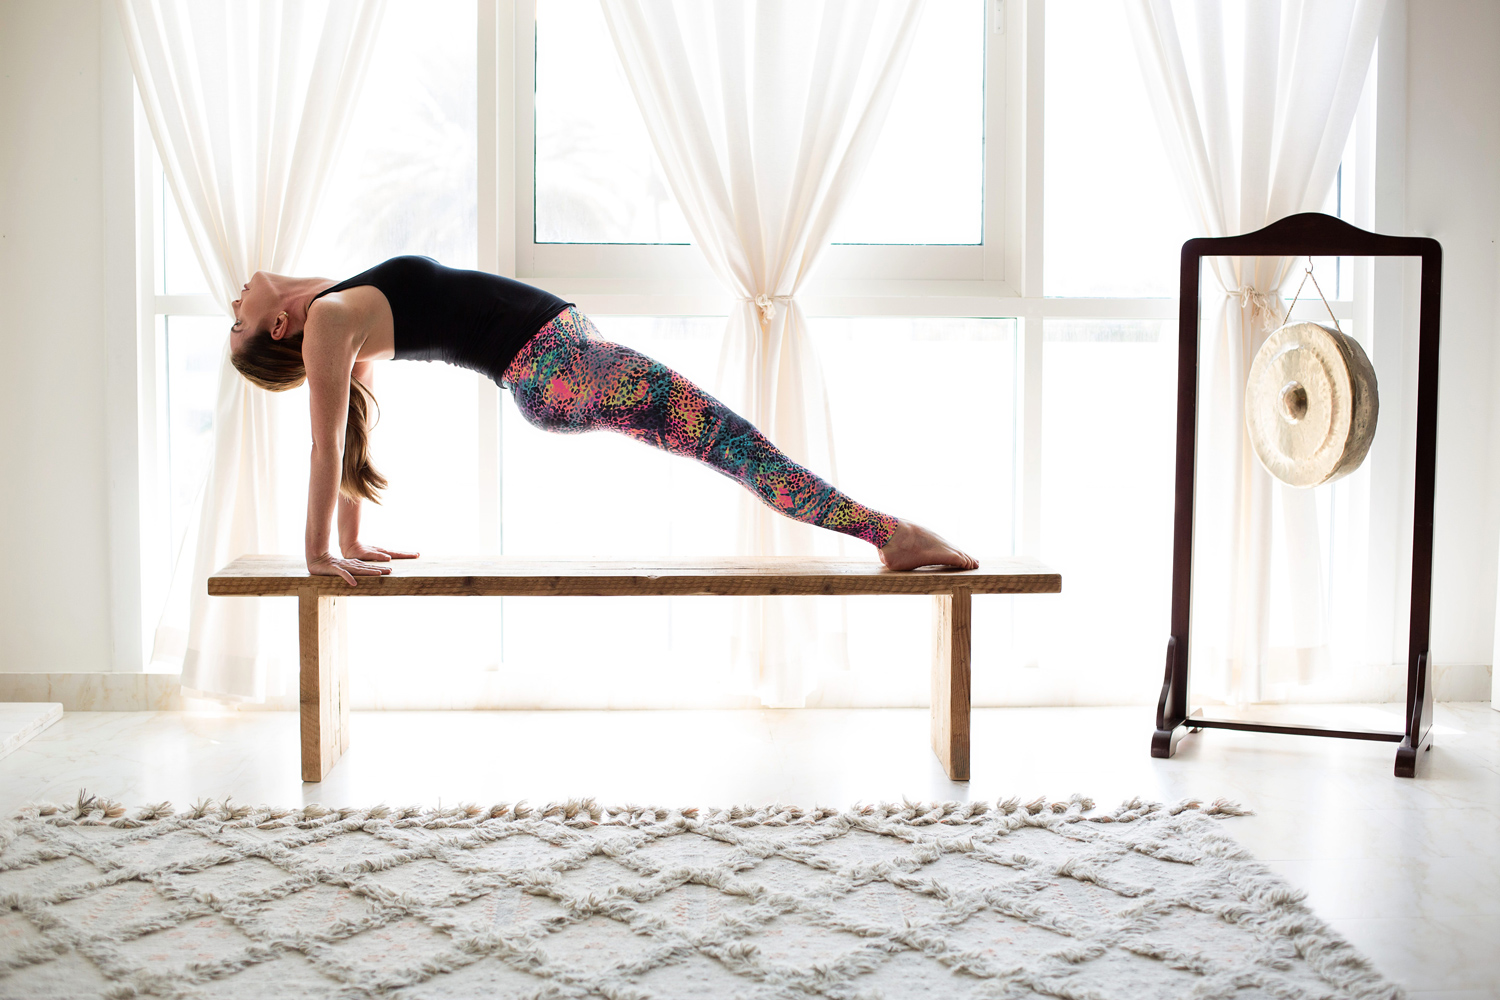 Excellent yoga studios to check out in Abu Dhabi